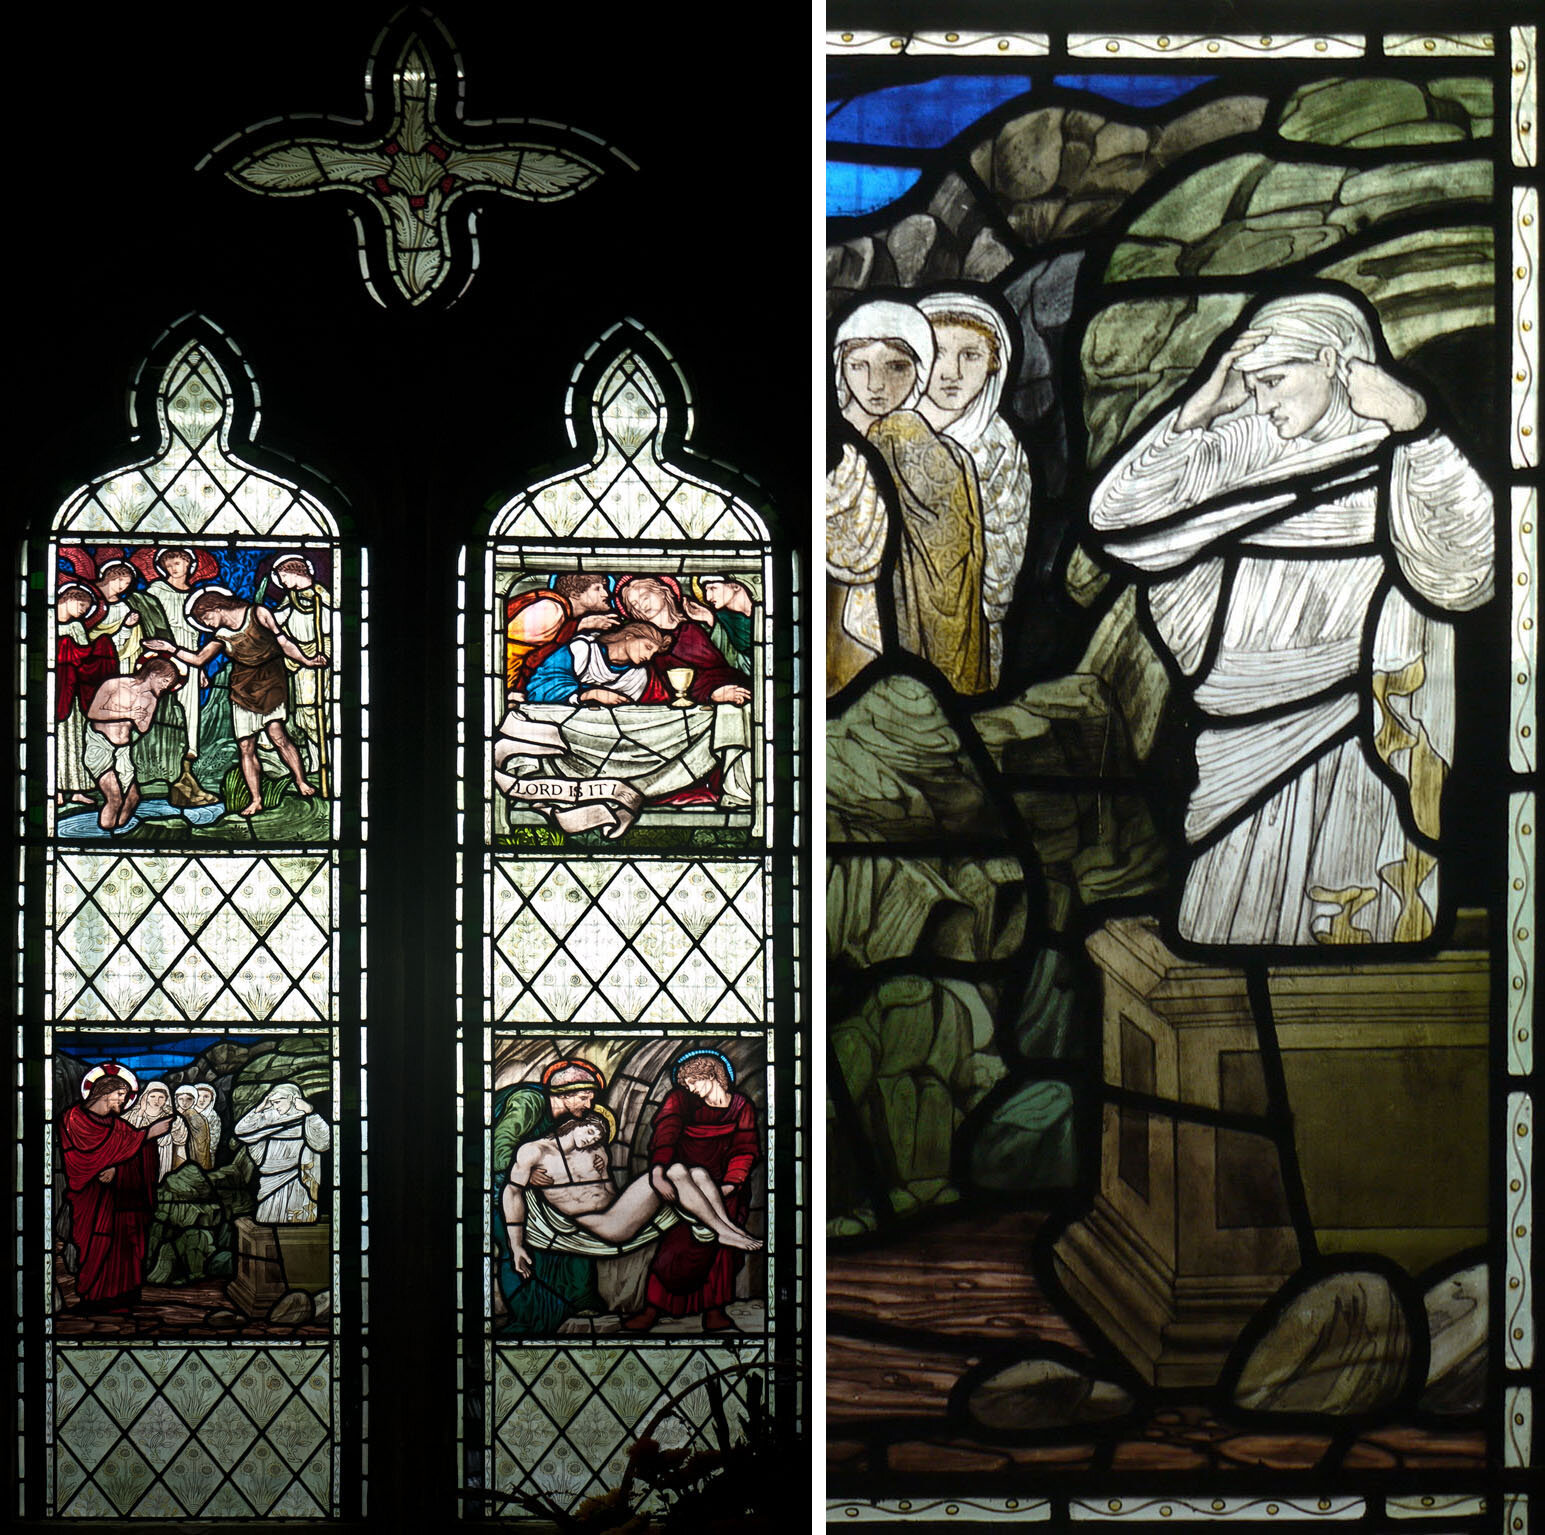 North chancel window, All Saints, Middleton Cheney, with details by Burne-Jones 1892.